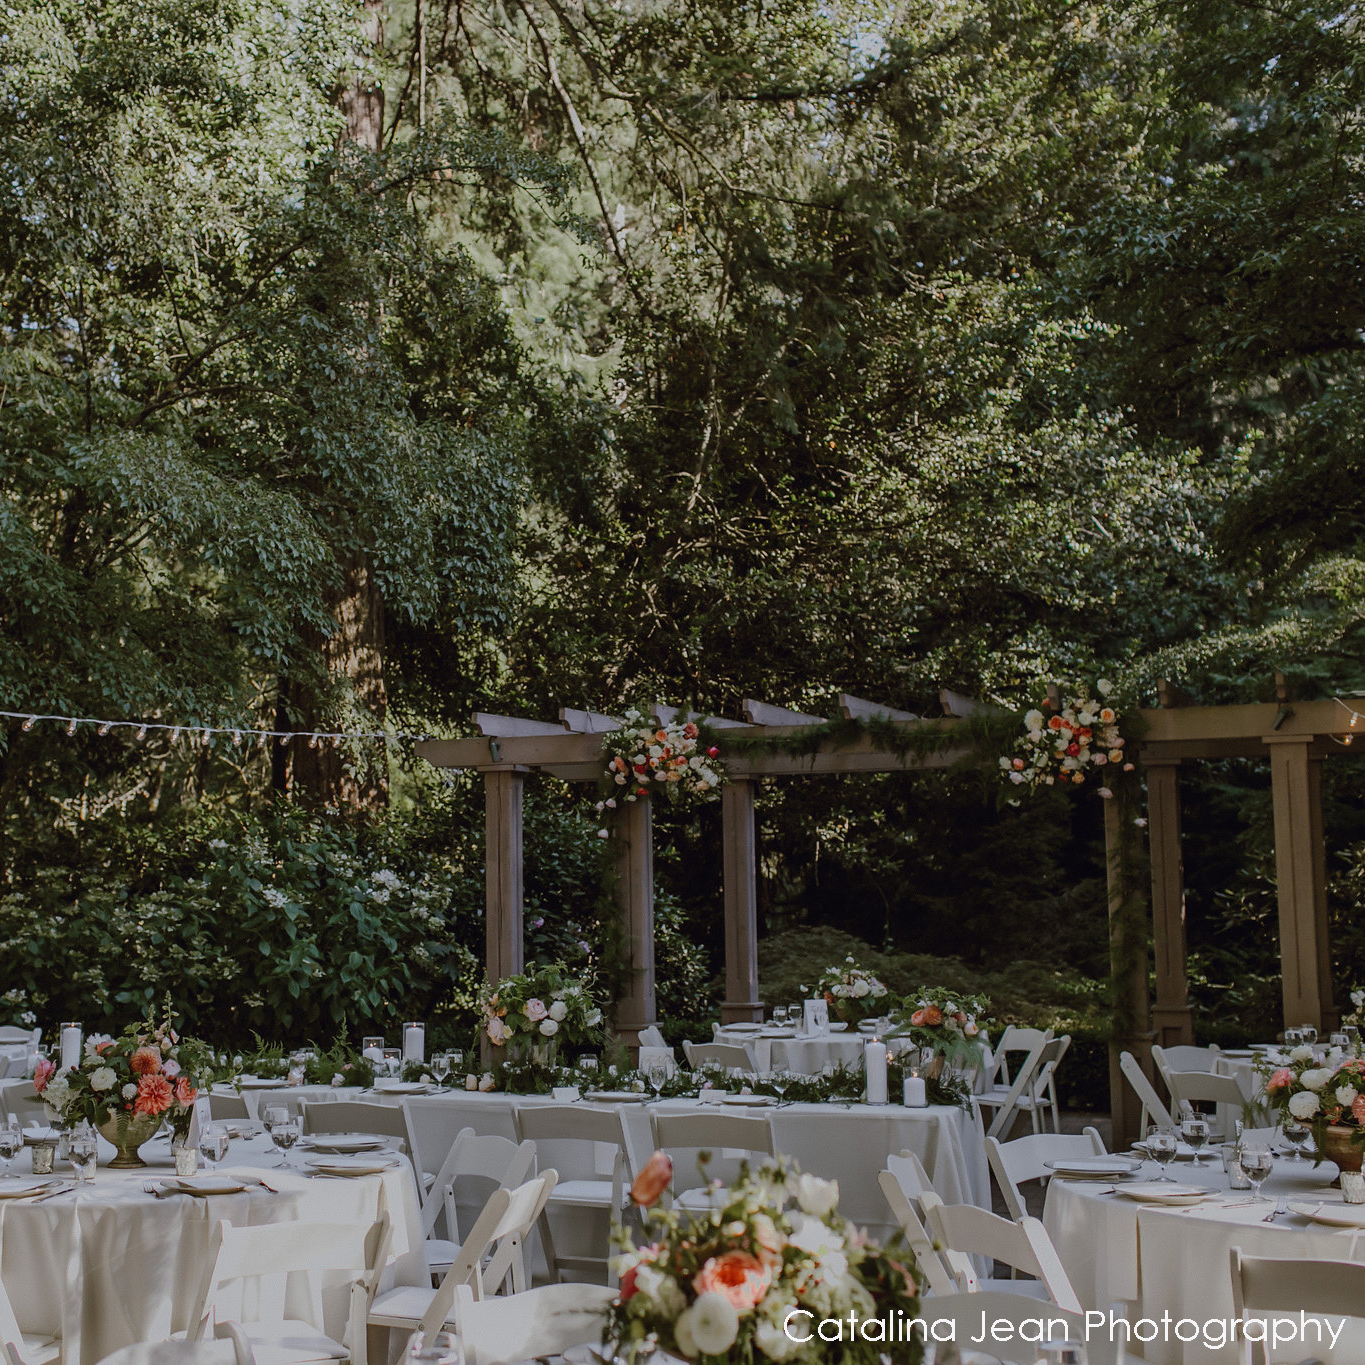 leach_garden_wedding_hilary_horvath_flowers.jpg